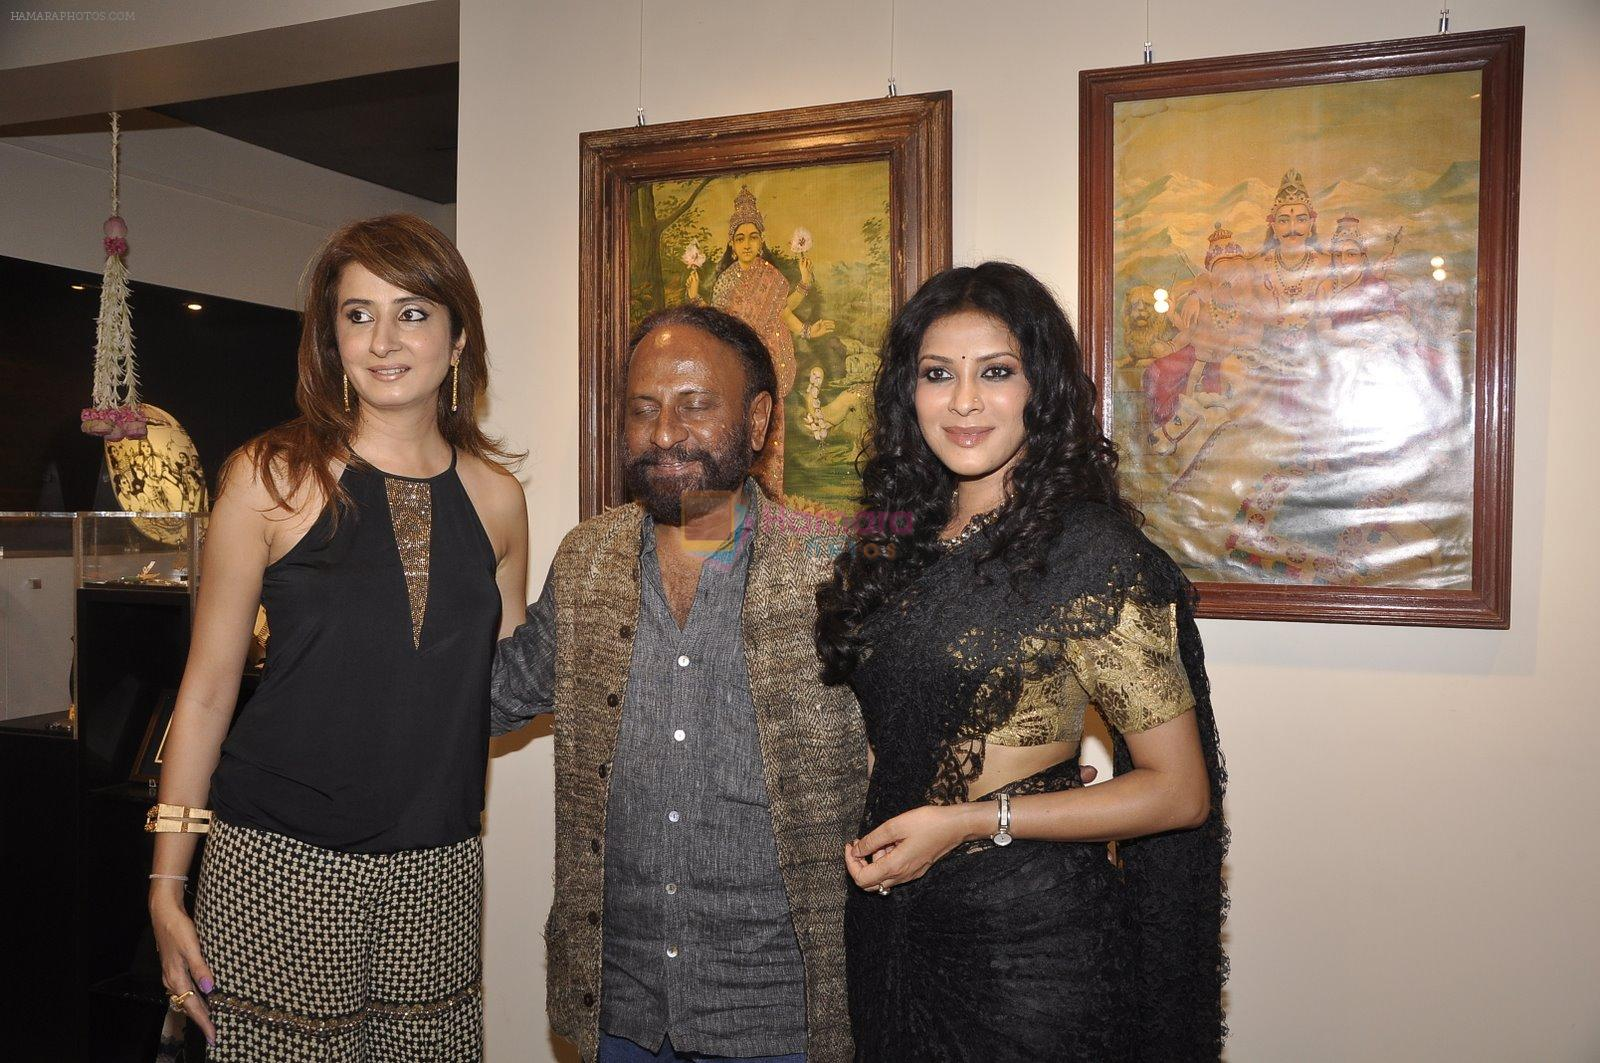 Nandana Sen, Ketan Mehta at the Inauguration of Raja Ravi Verma Collection of Life and Work in marine Lines, Mumbai on 5th Nov 2014